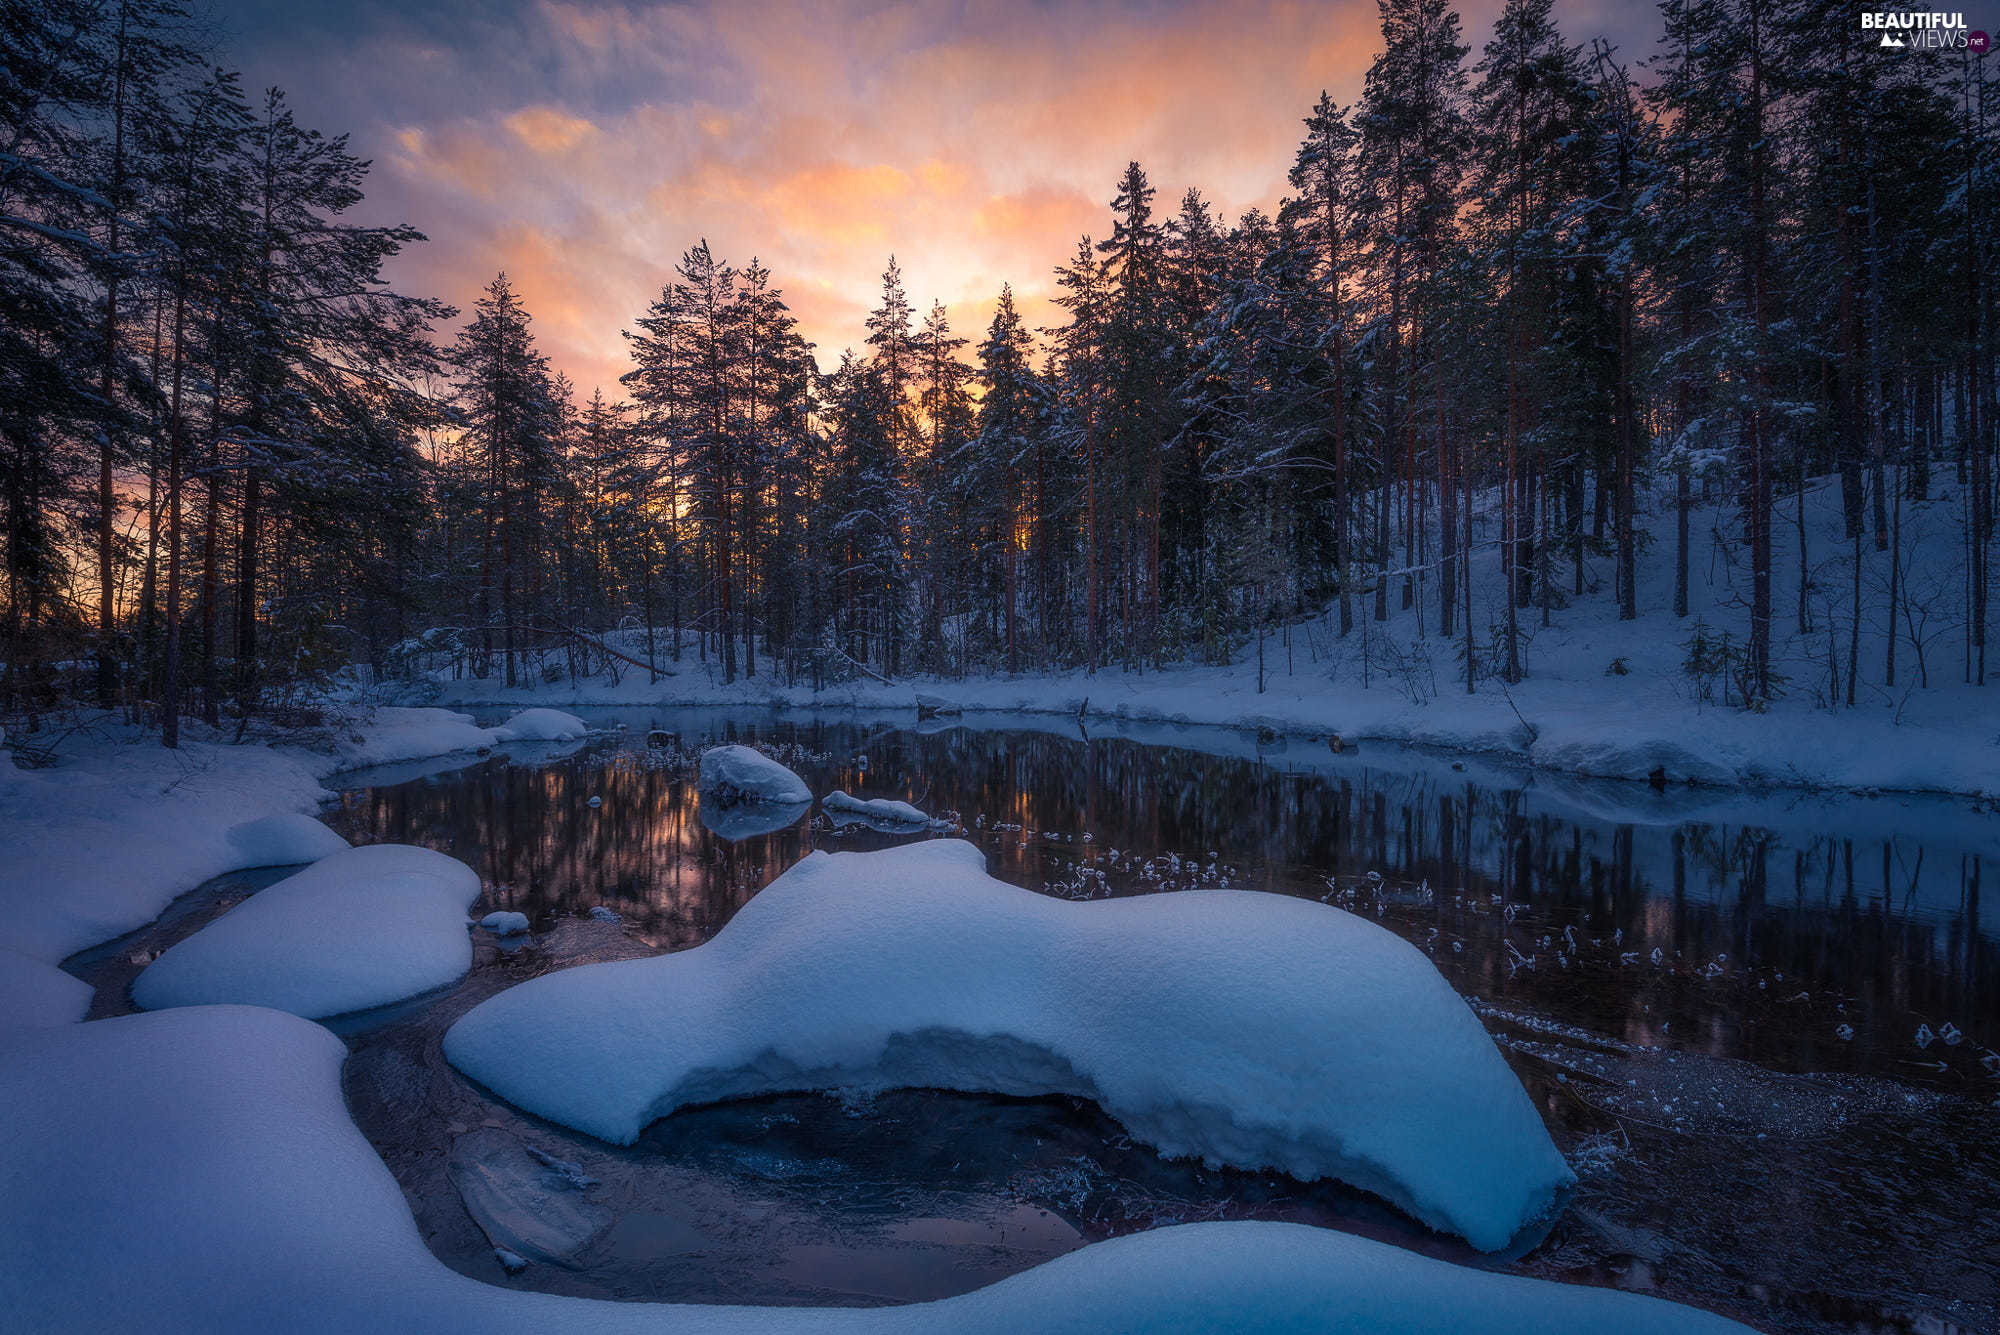 viewes, Ringerike Municipality, snow, trees, Norway, winter, lake